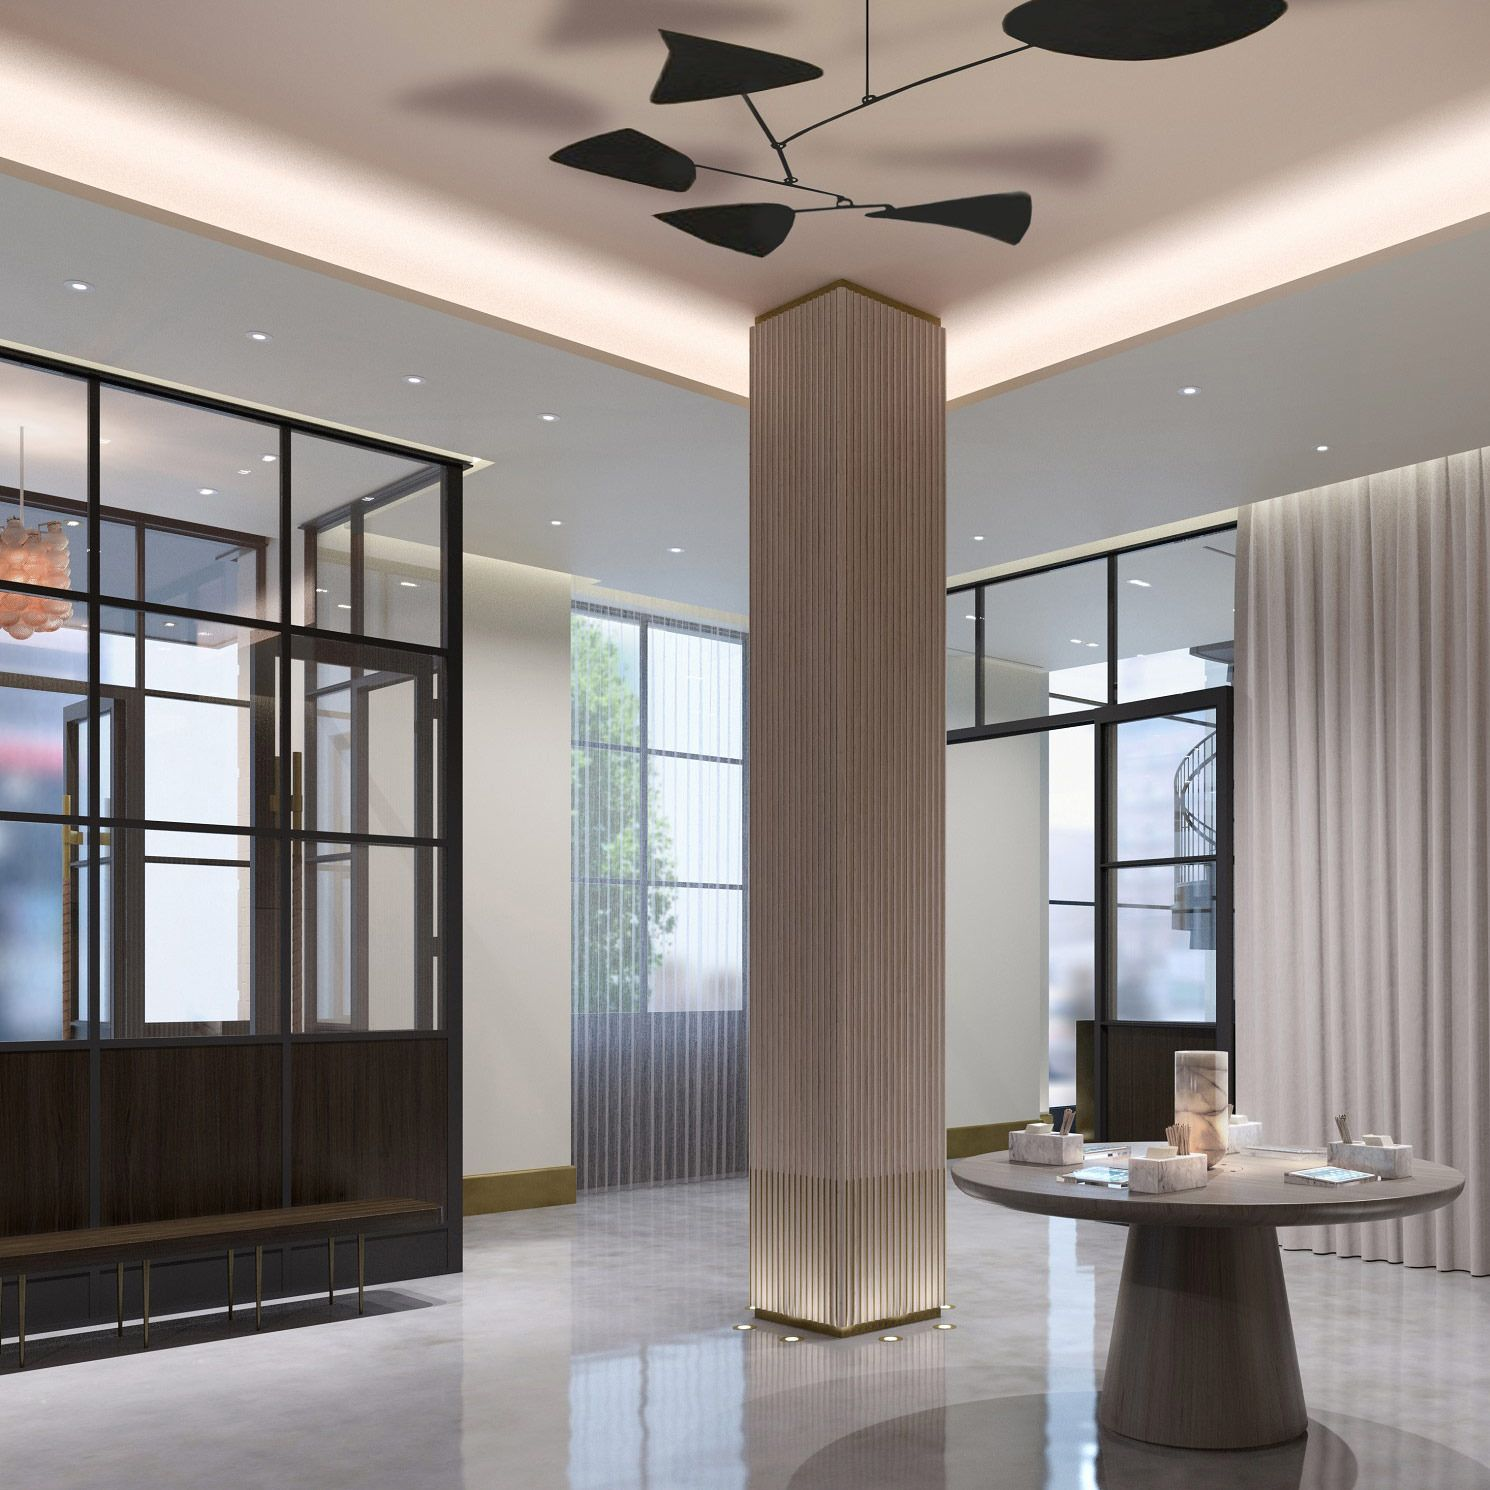 Touring 11 howard and the manhattan house with two new - Decorative columns interior design ...